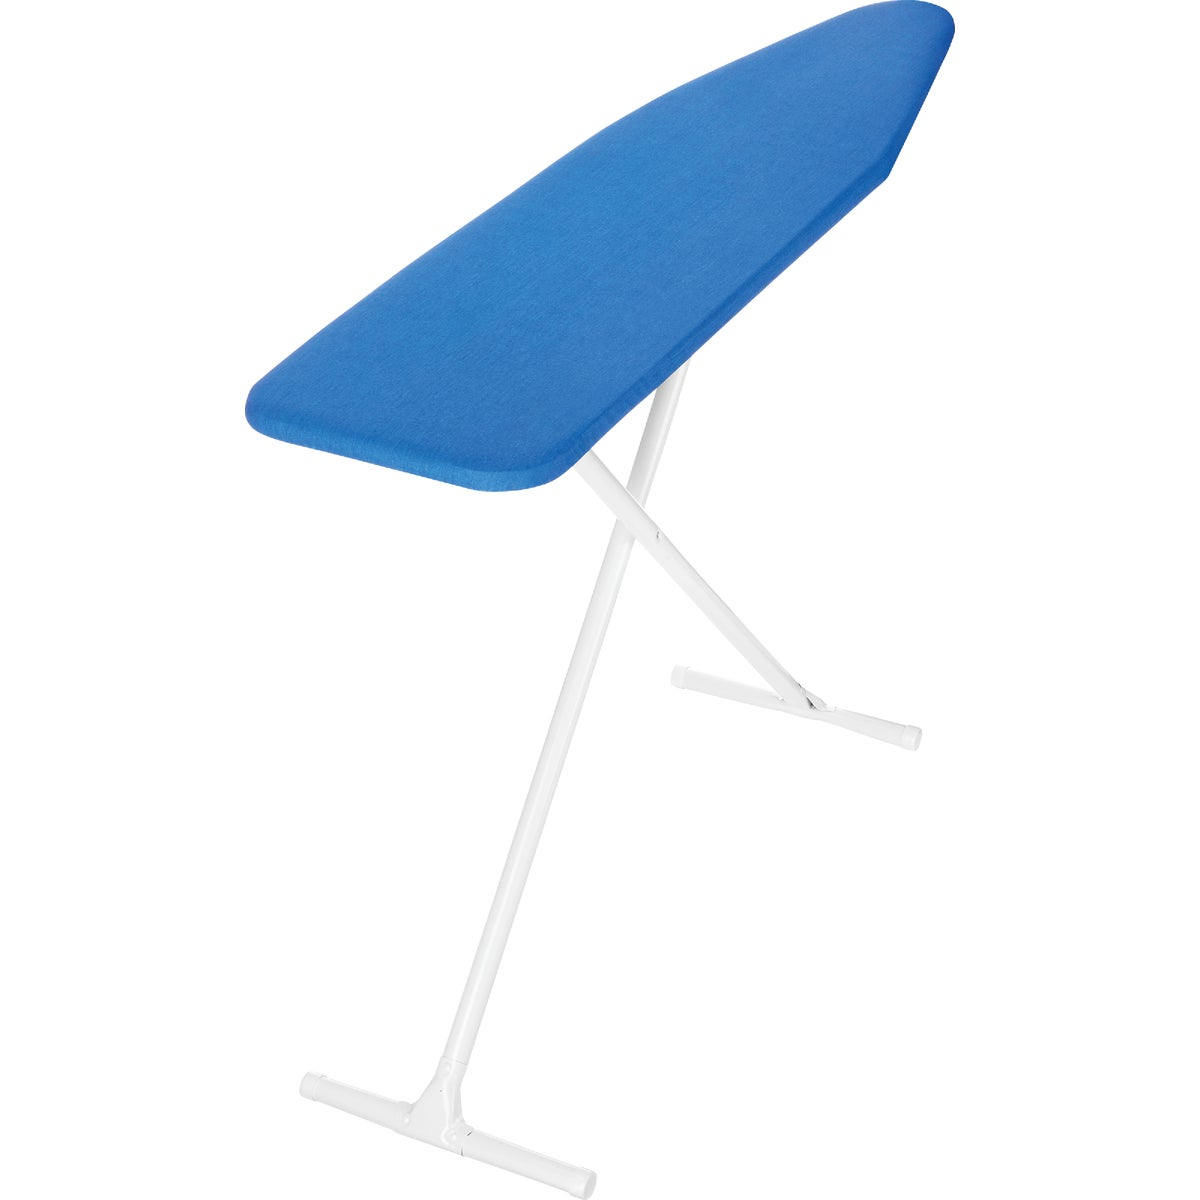 T-LEG IRONING TABLE - 4850049 by Homz  Seymour